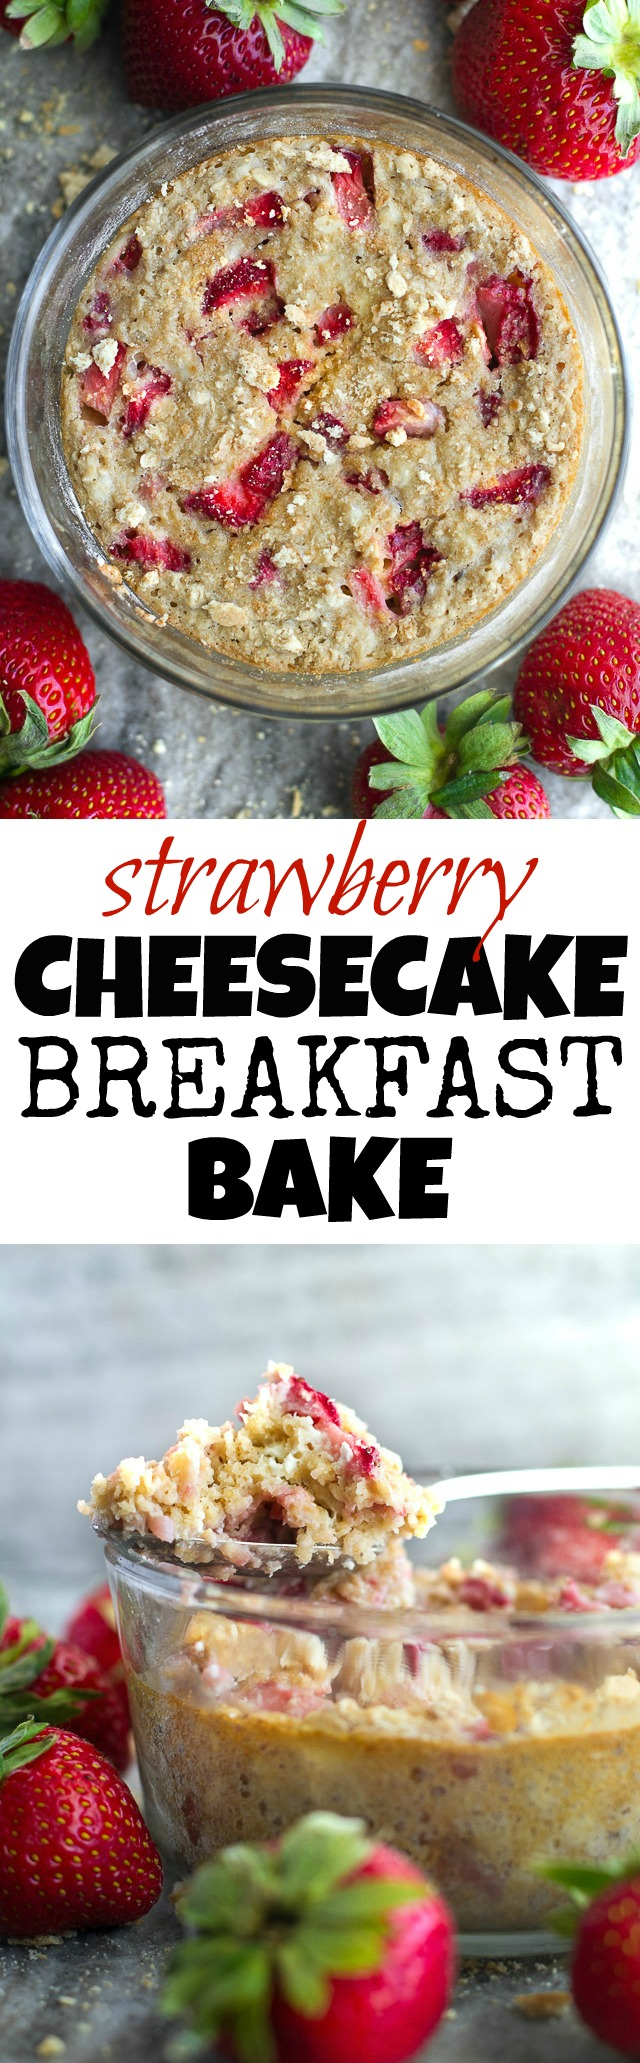 baked breakfast cheesecake recipes dishmaps baked breakfast cheesecake ...